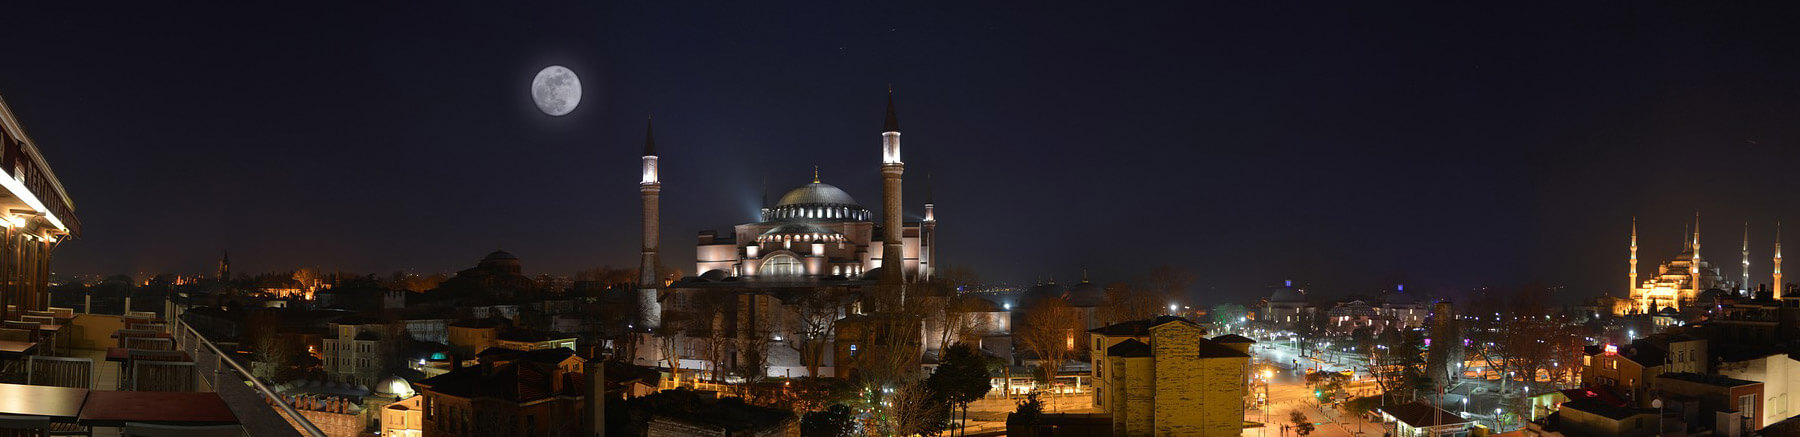 View of Hagia Sophia in Istambul, Turkey with a full moon in the sky